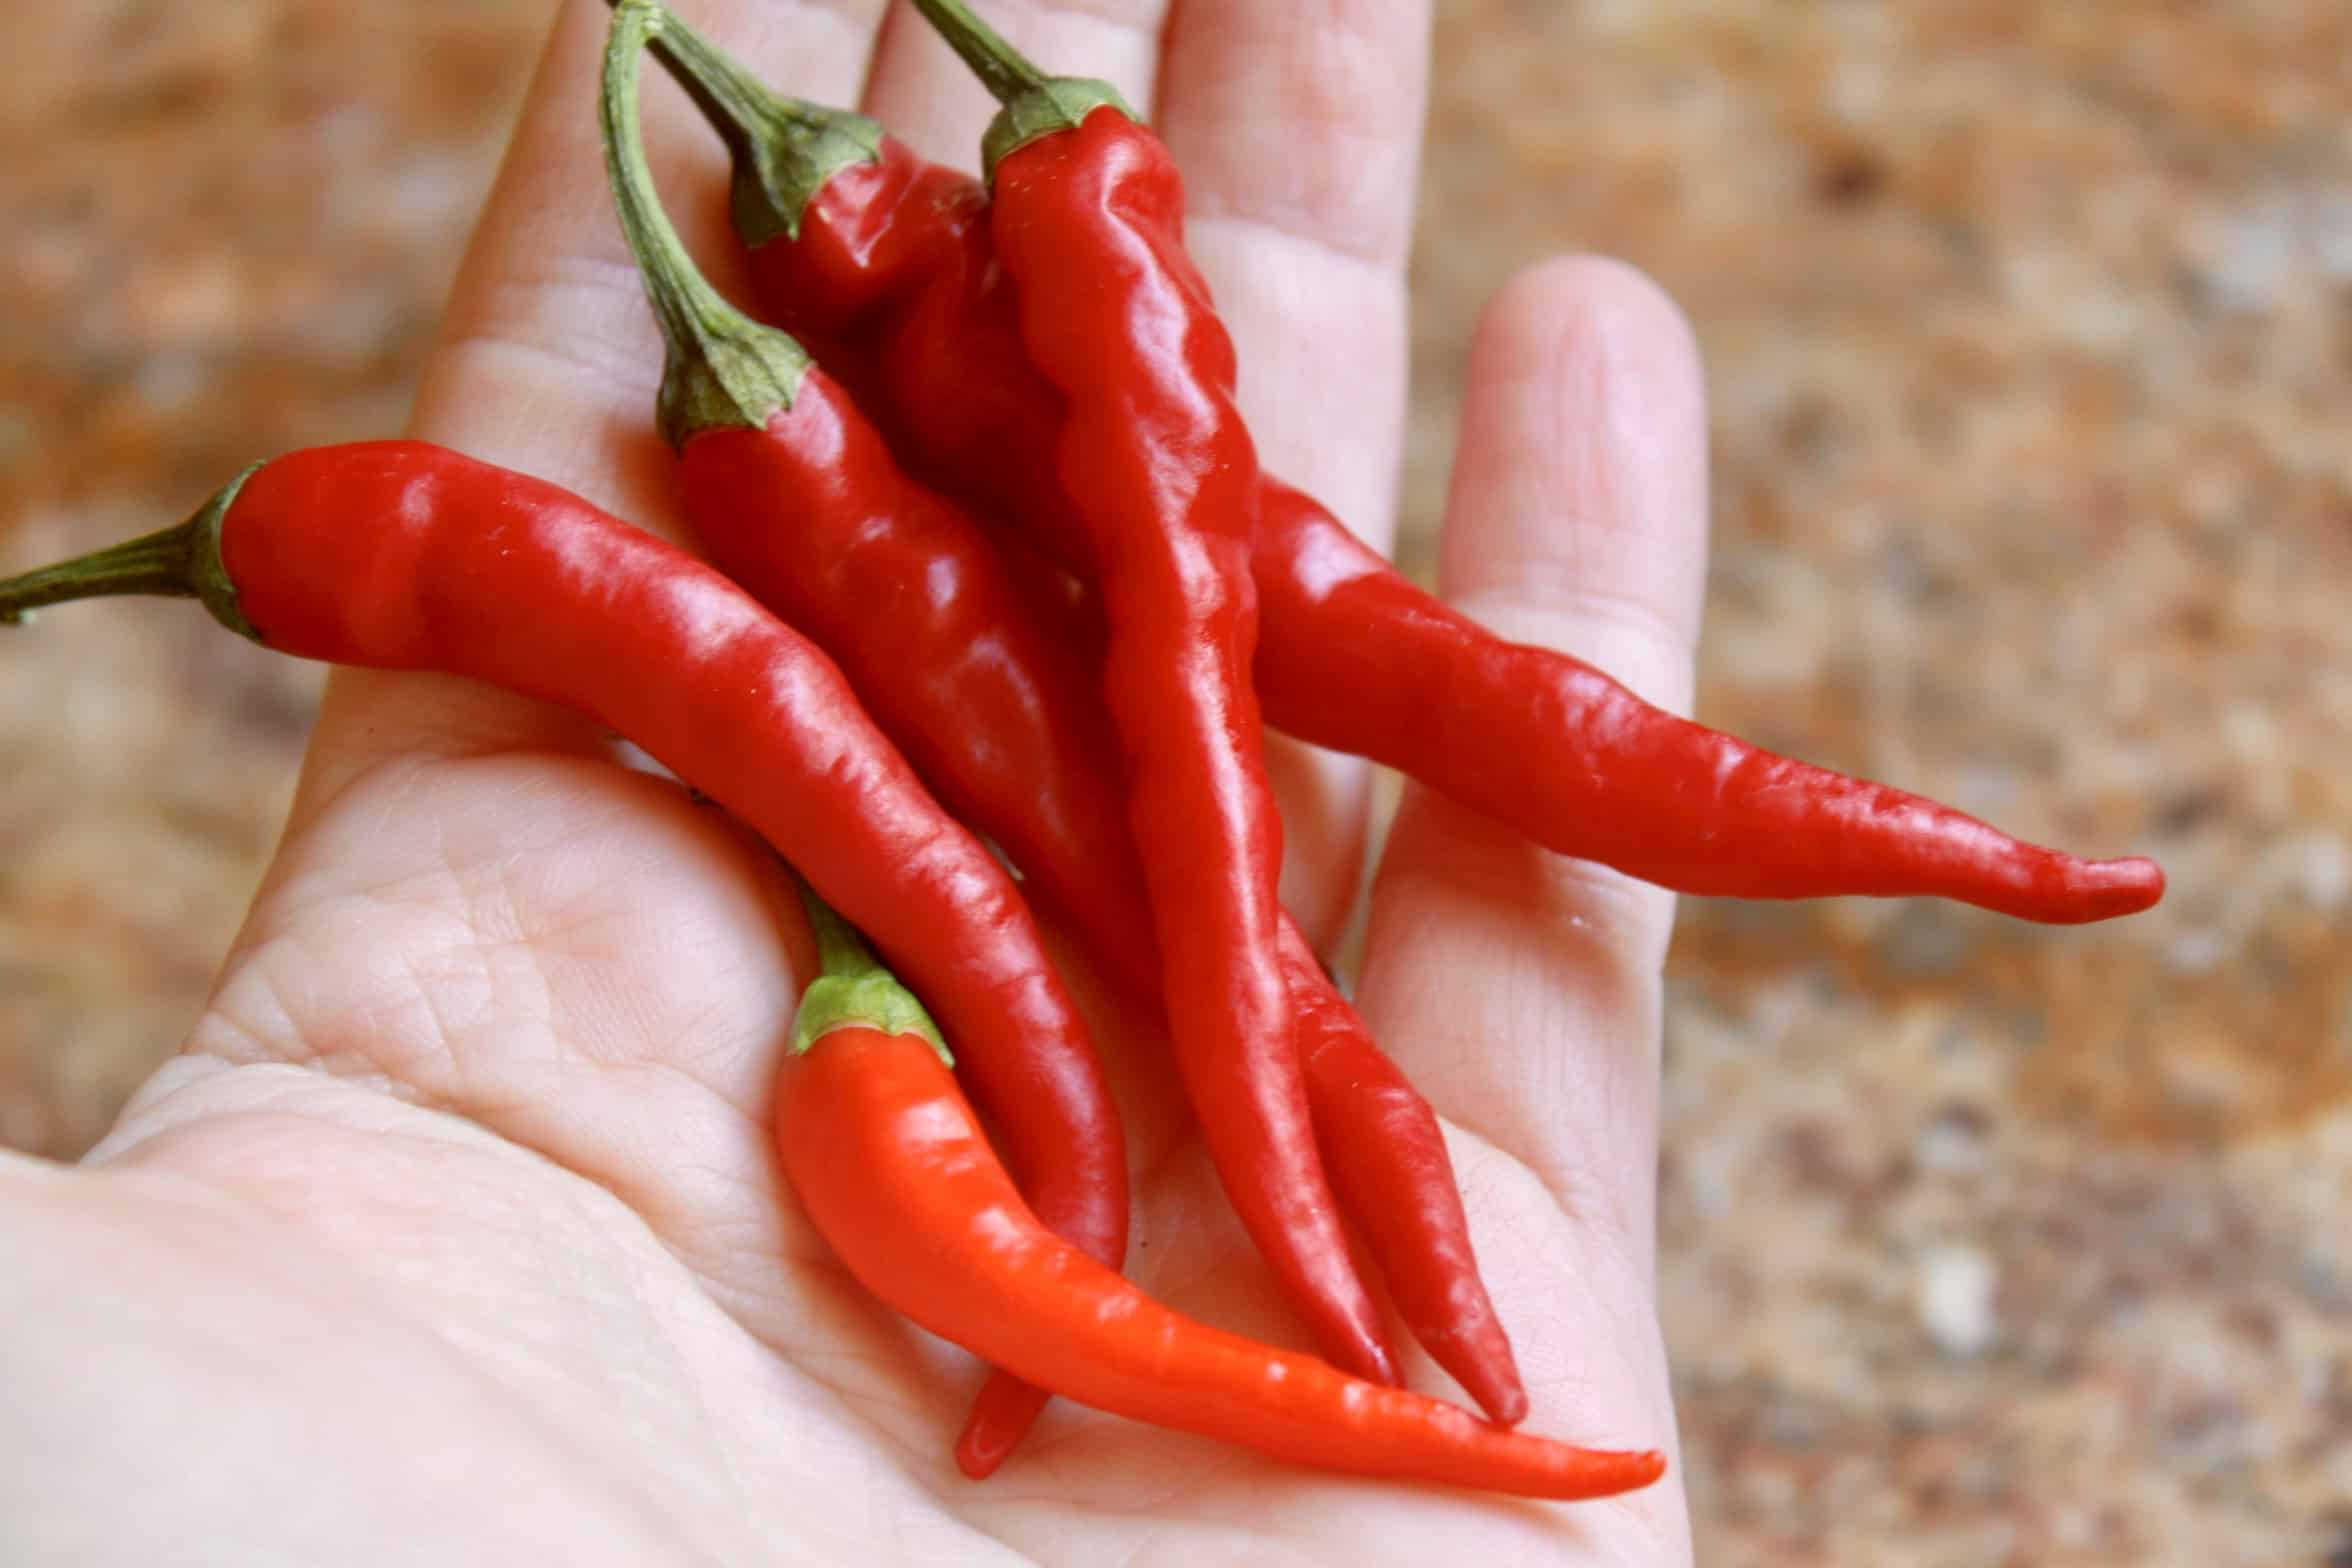 cayenne peppers on a hand